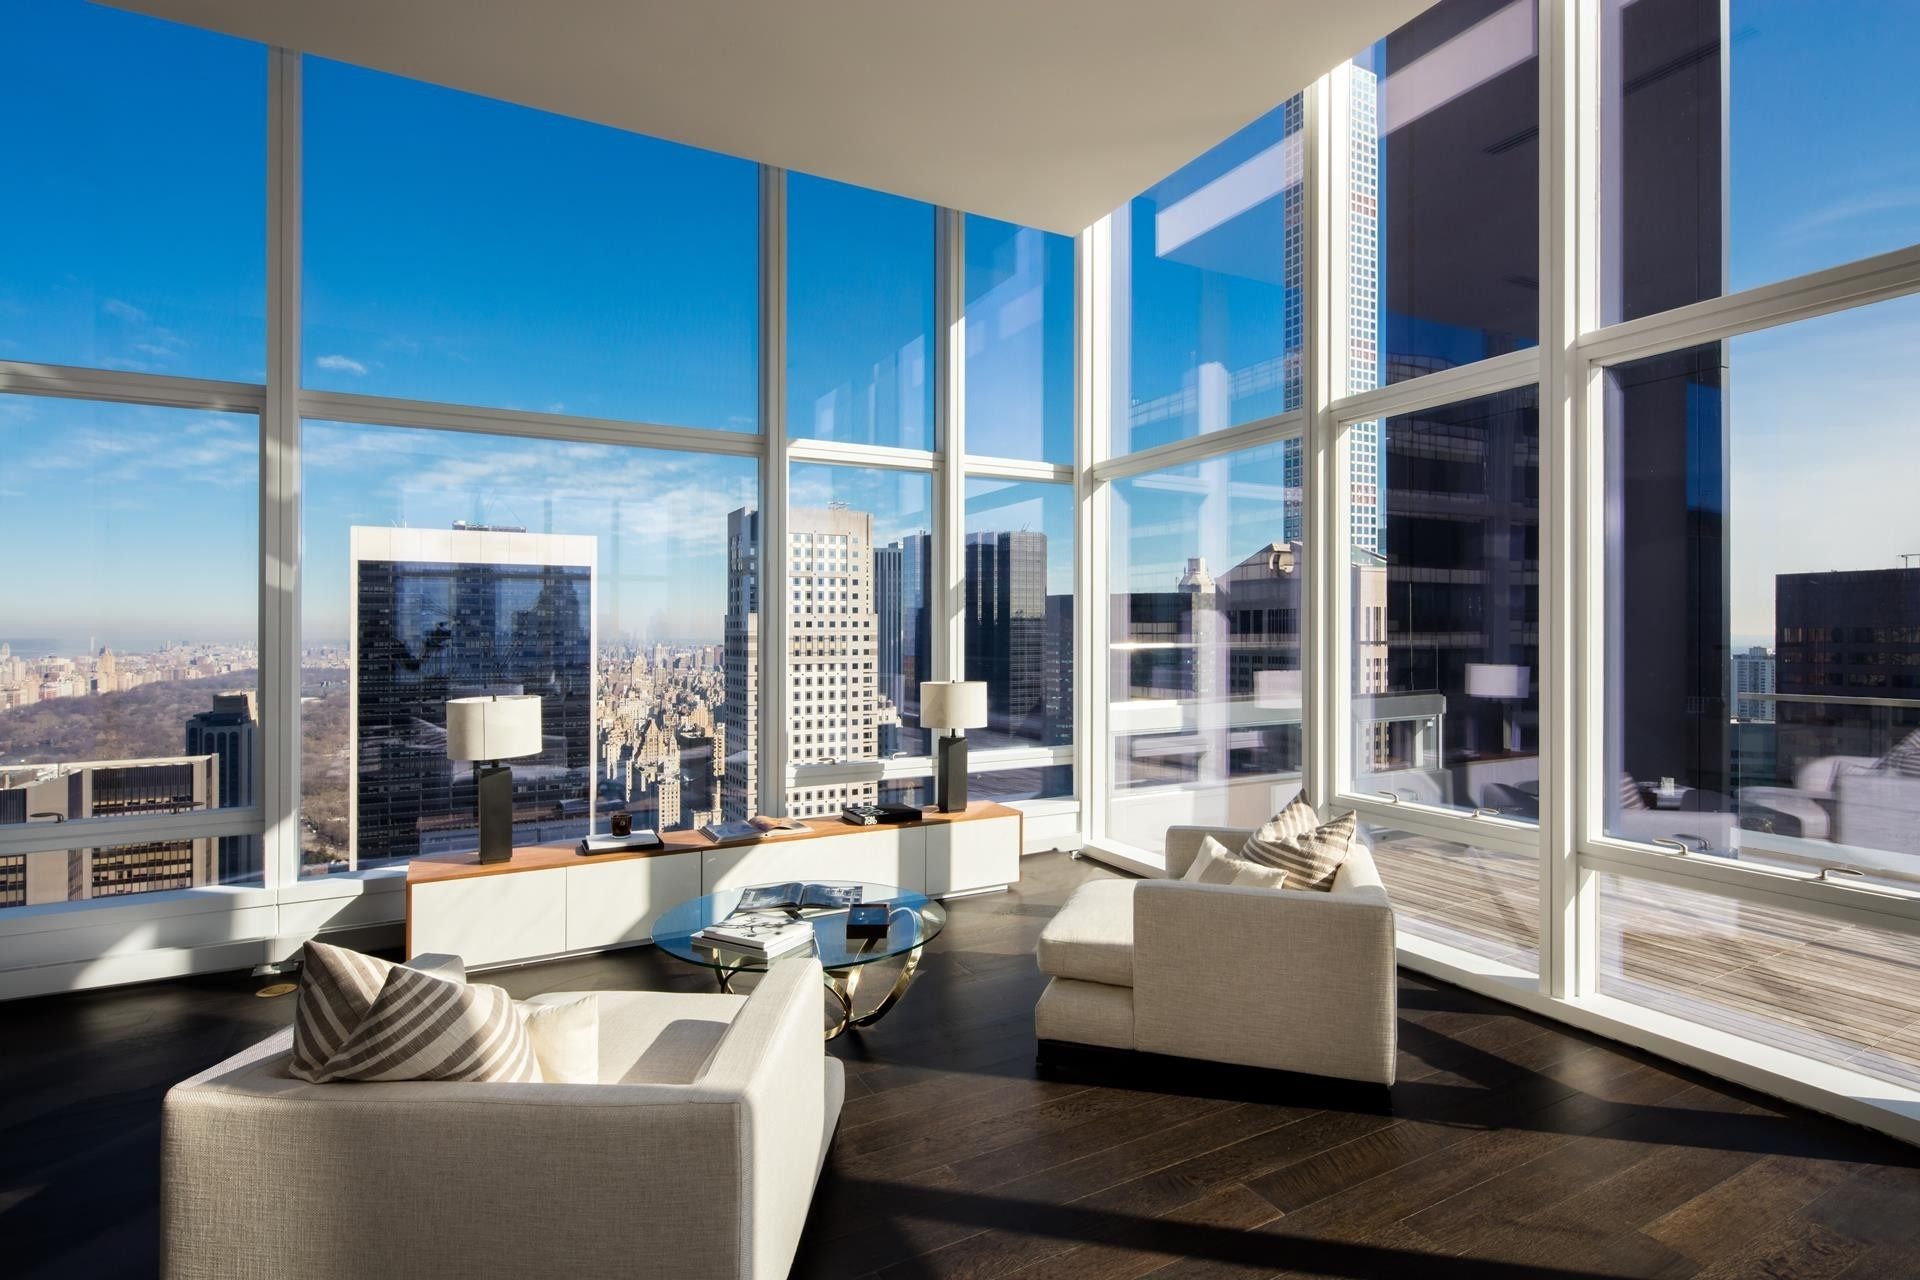 4. Condominiums for Sale at Baccarat Hotel And Residences, 20 W 53RD ST , PH48/49 Midtown West, New York, NY 10103